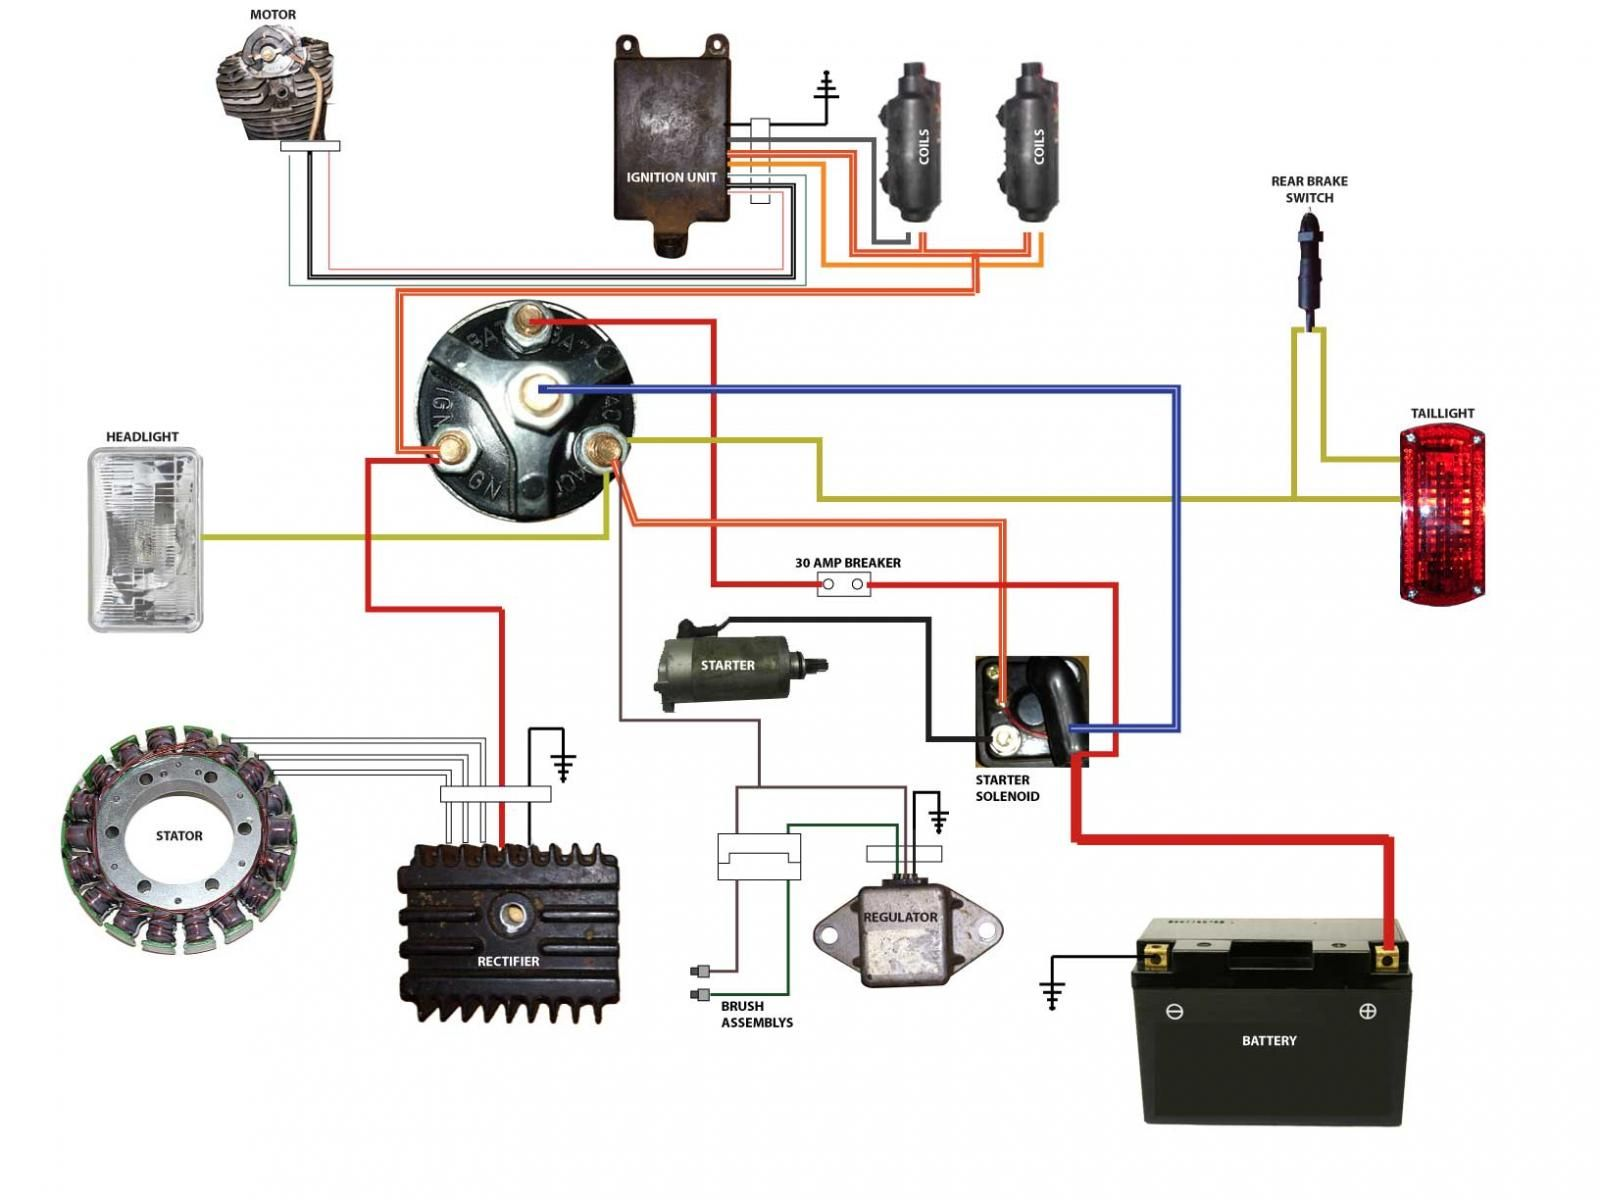 yamaha grizzly 125 wiring schematic yamaha xs400 engine diagram yamaha wiring diagrams online